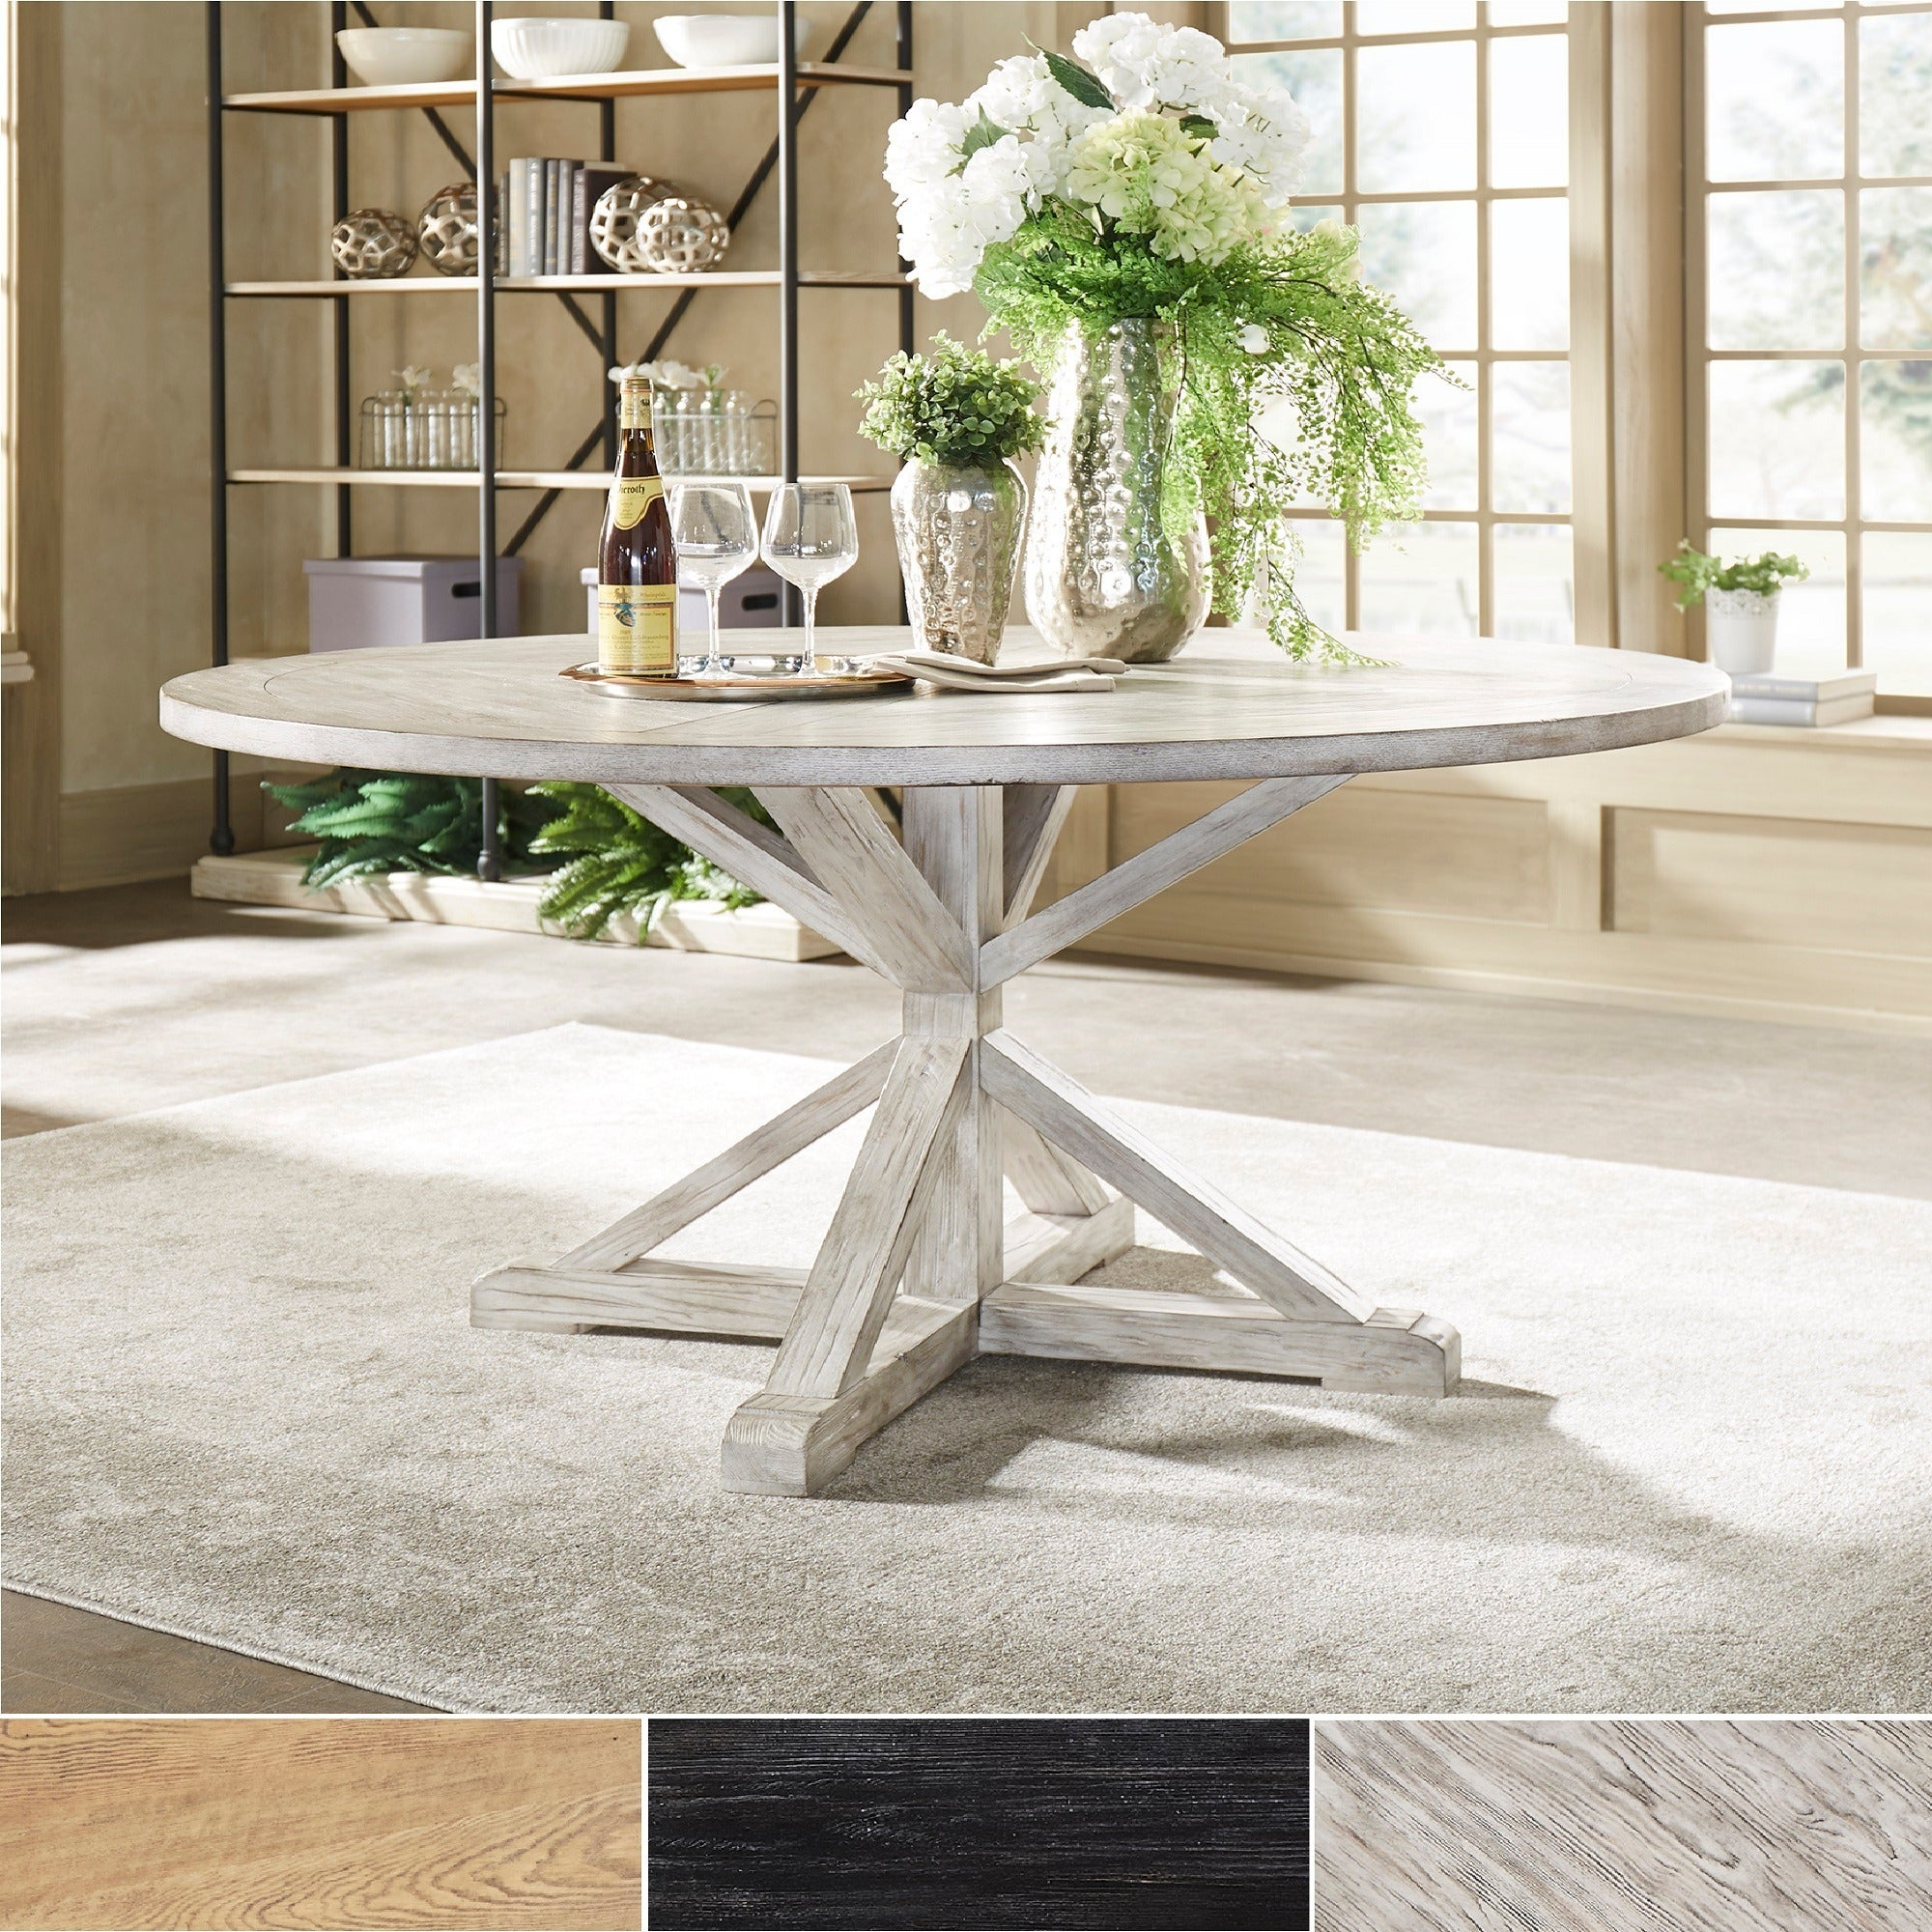 Benchwright Rustic X Base Round Pine Wood Dining Tableinspire Q Artisan Intended For Most Recently Released Benchwright Round Pedestal Dining Tables (View 7 of 25)